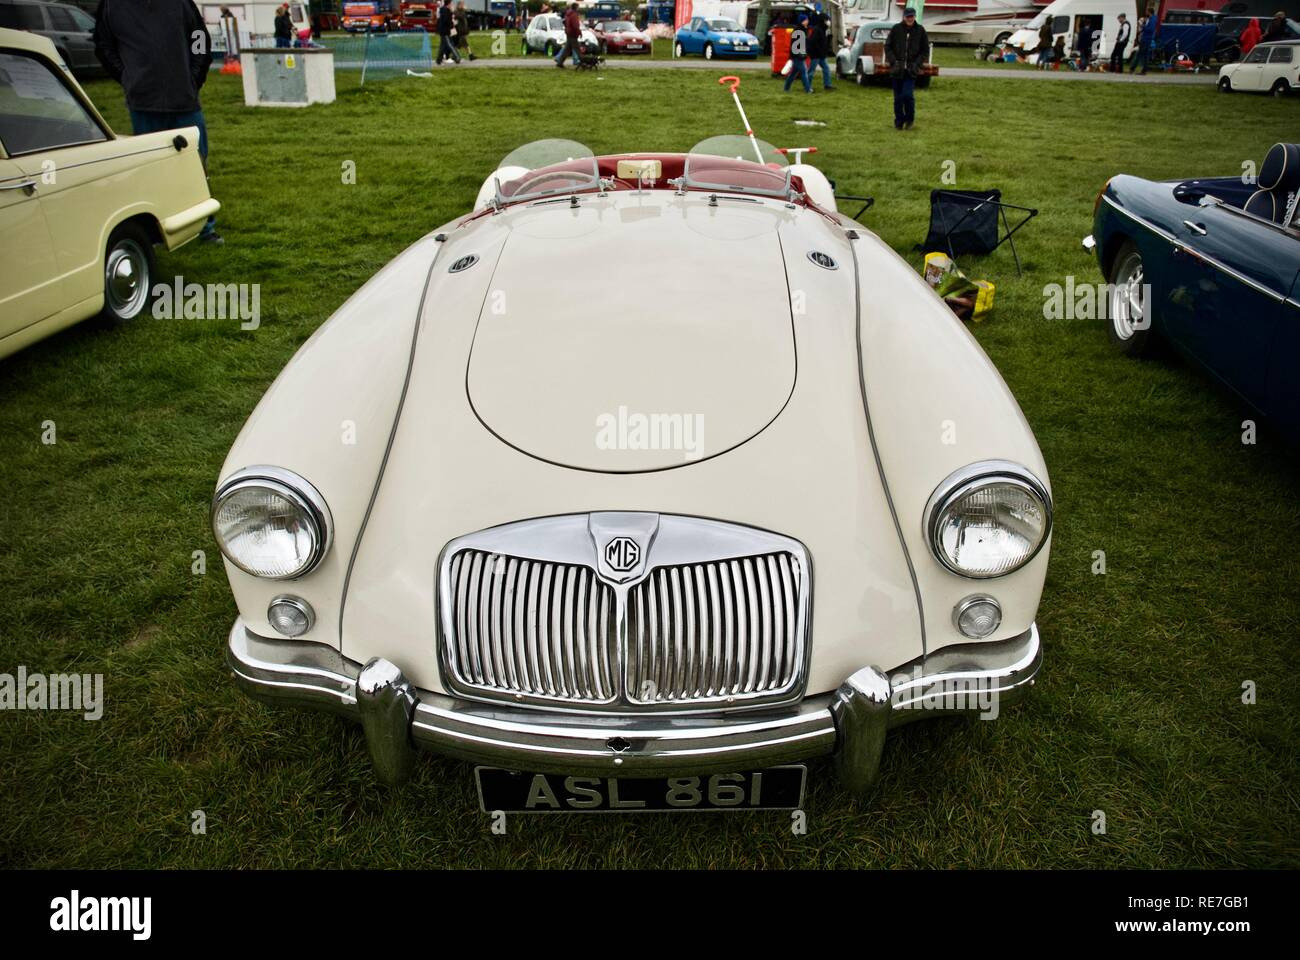 Front view of an MGA at the Anglesey Vintage Rally, Anglesey, North Wales, UK, May 2015 - Stock Image